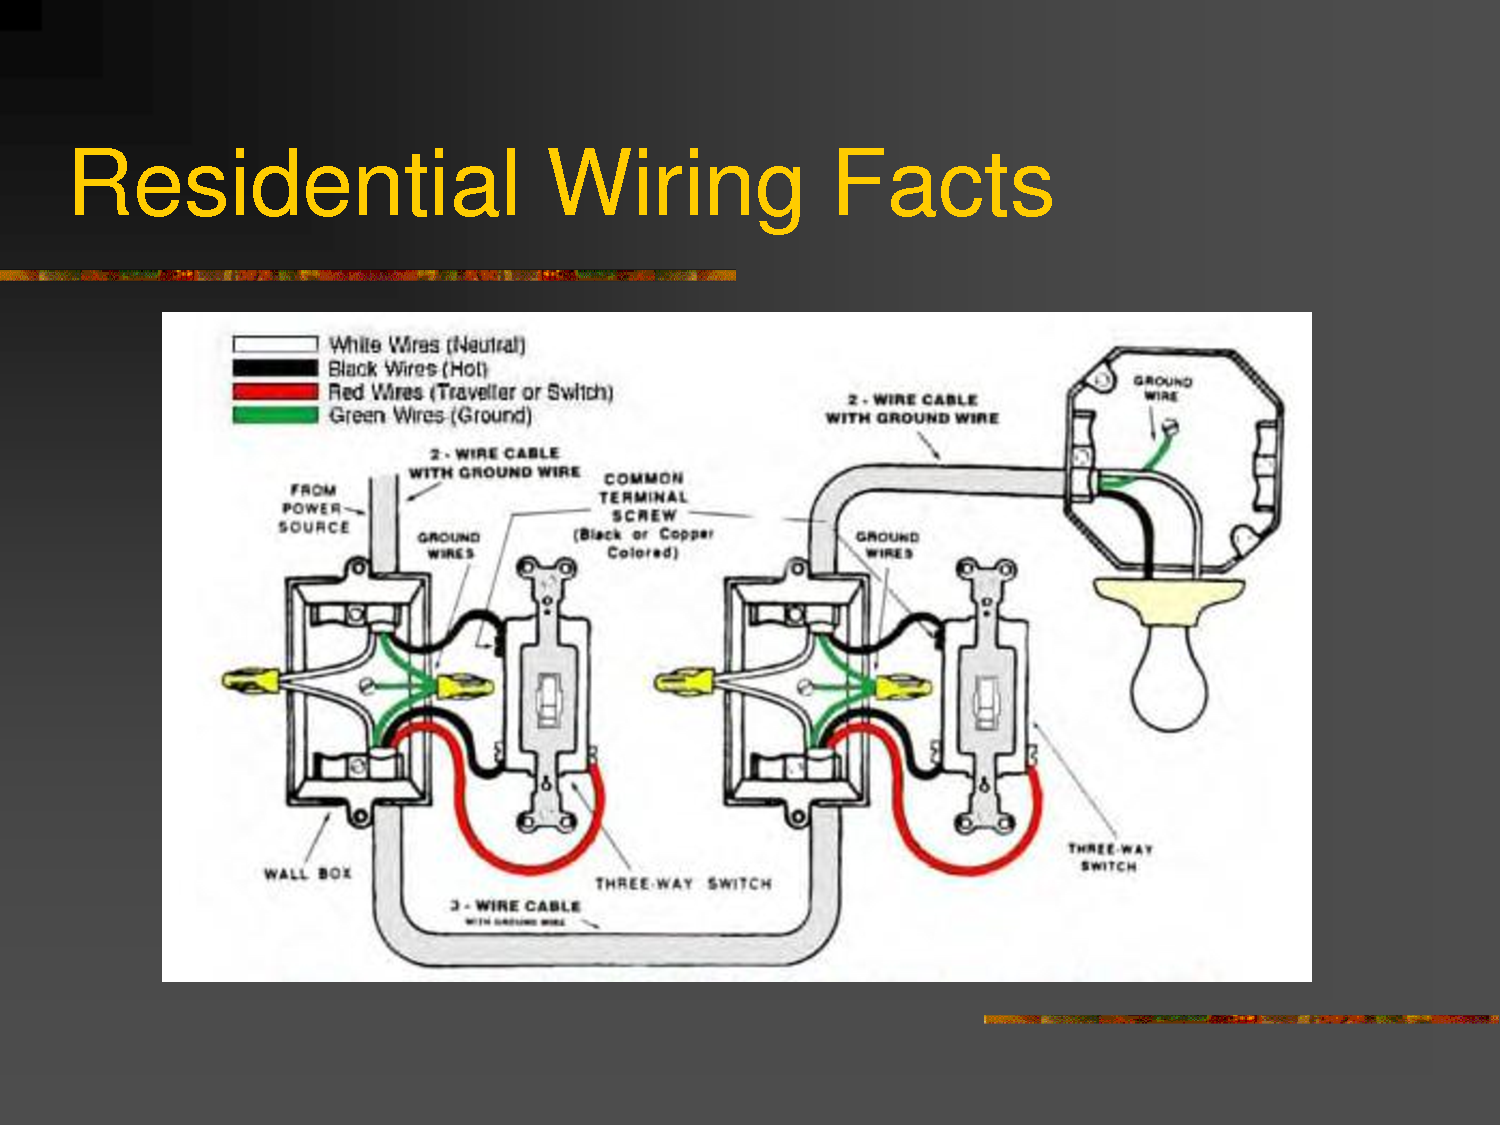 Old House Electrical Schematic Wiring Diagram Libraries Diy Home Todaysolder Colors Network